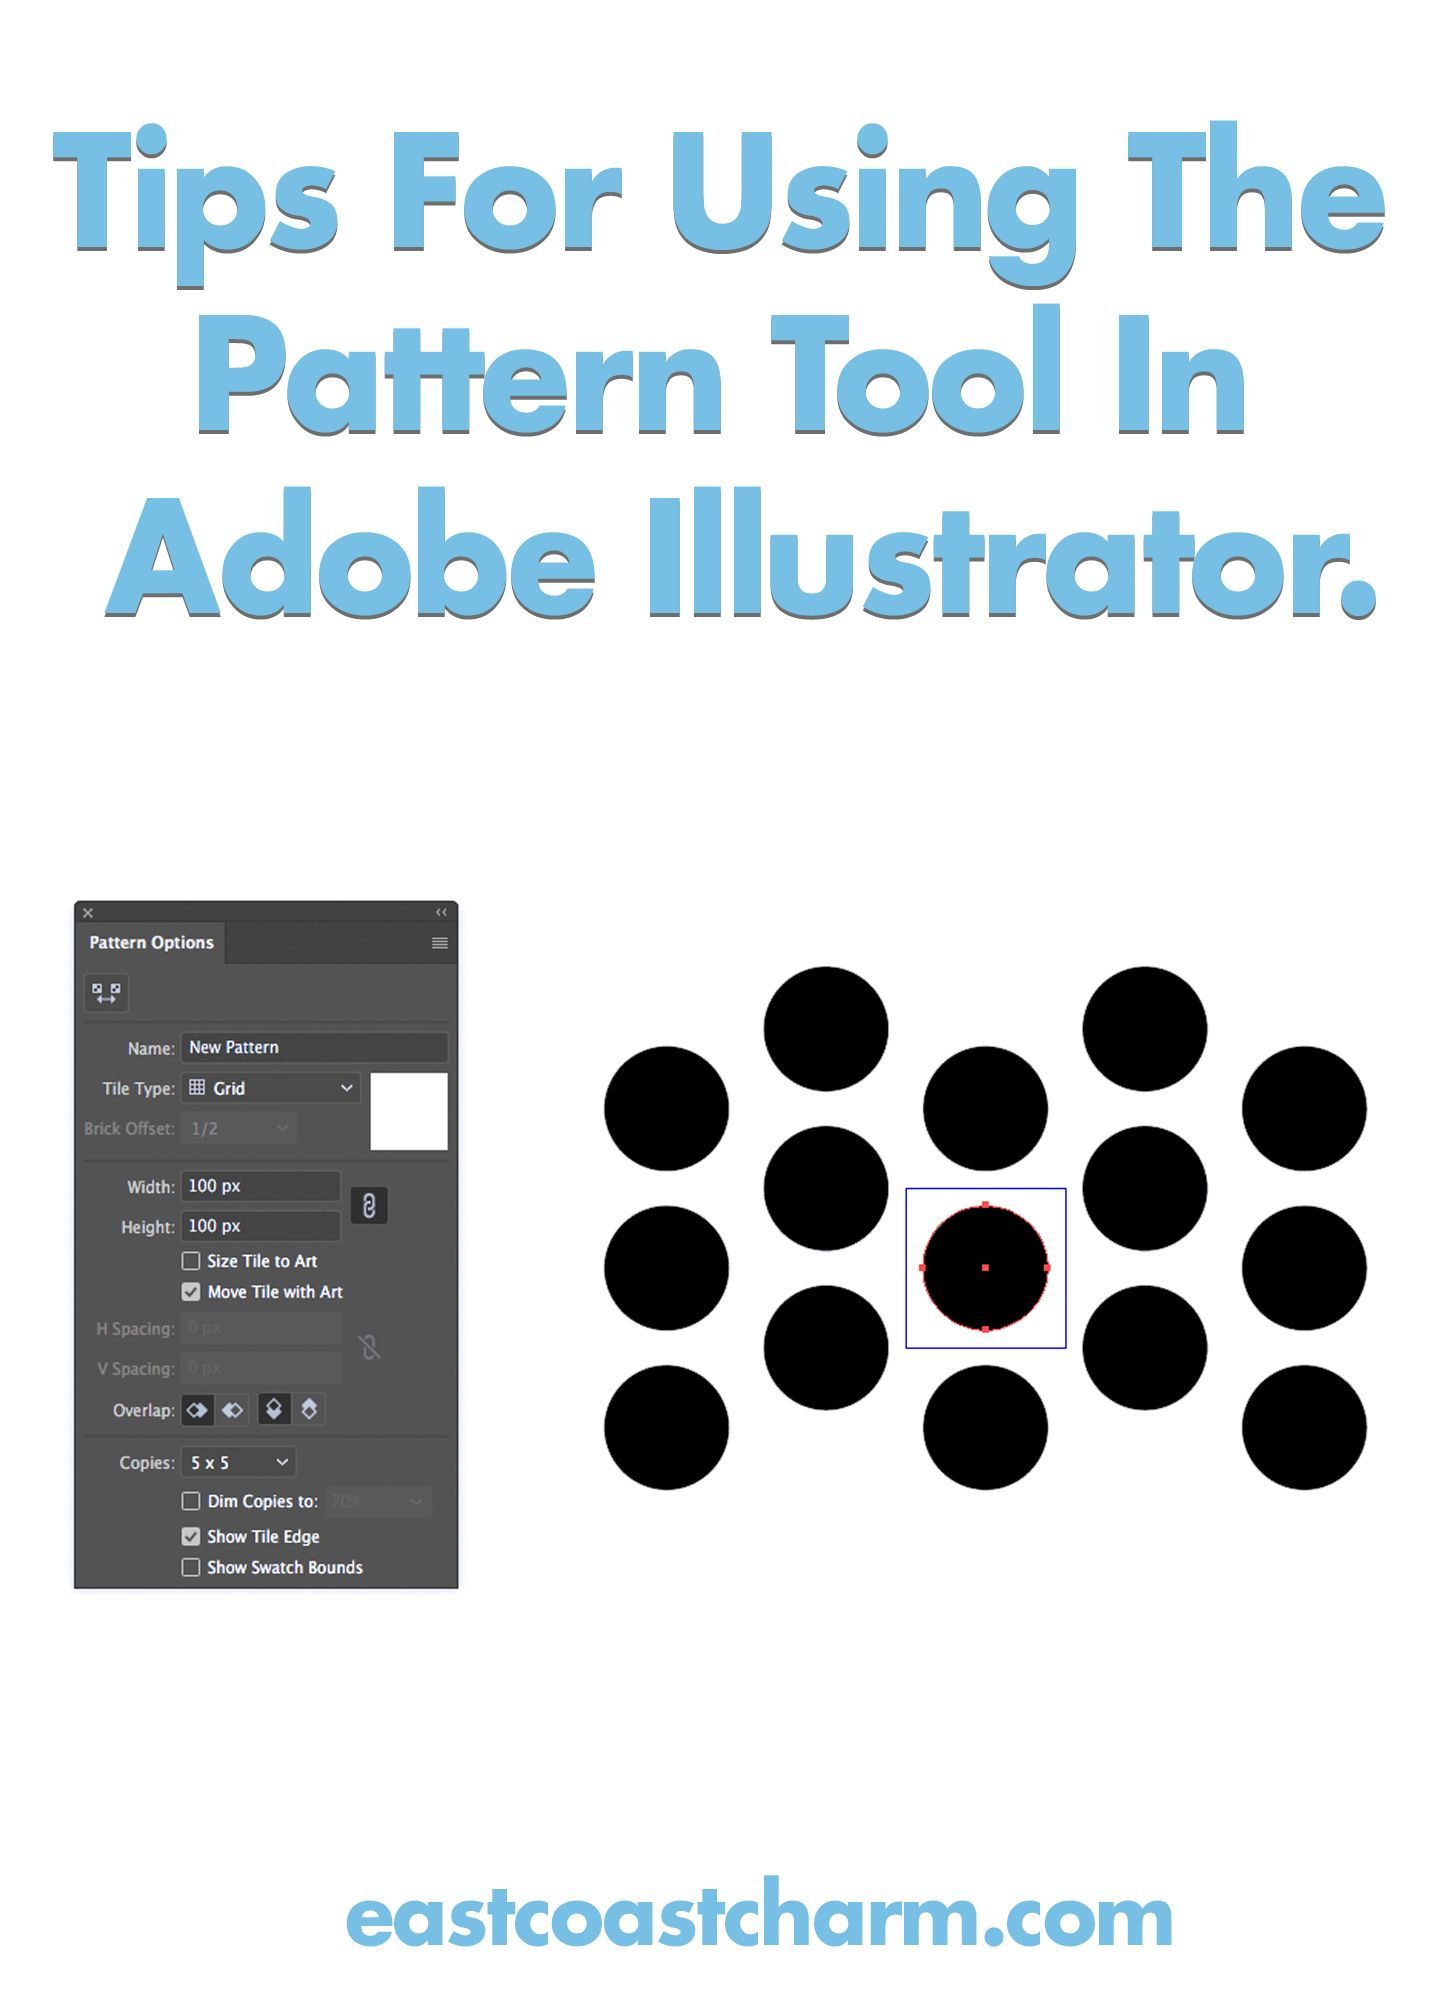 Tips For Using The Pattern Tool In Adobe Illustrator